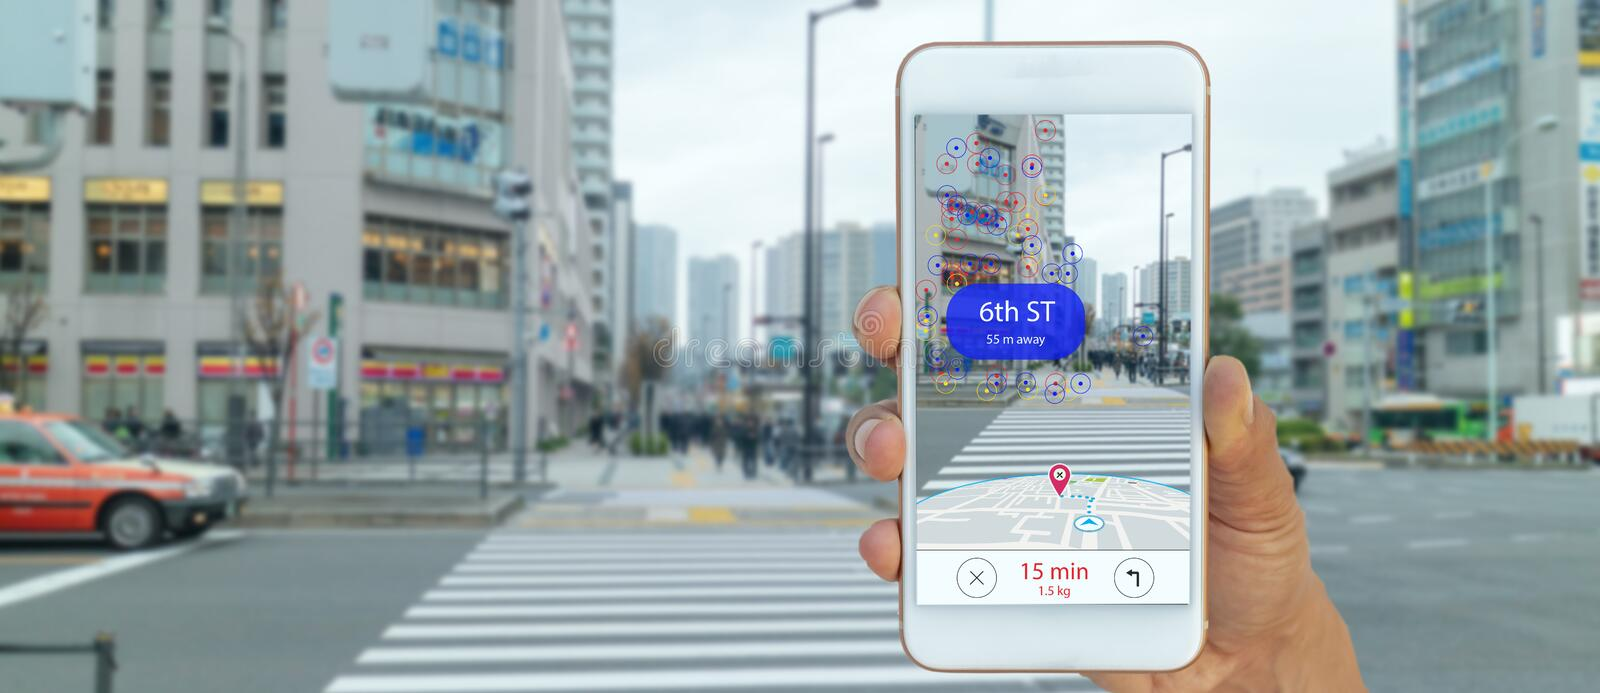 Map use ai, artificial intelligence algorithms to determine what individuals want to see When GPS location service are turned on a. Nd the Maps app is opened stock photo